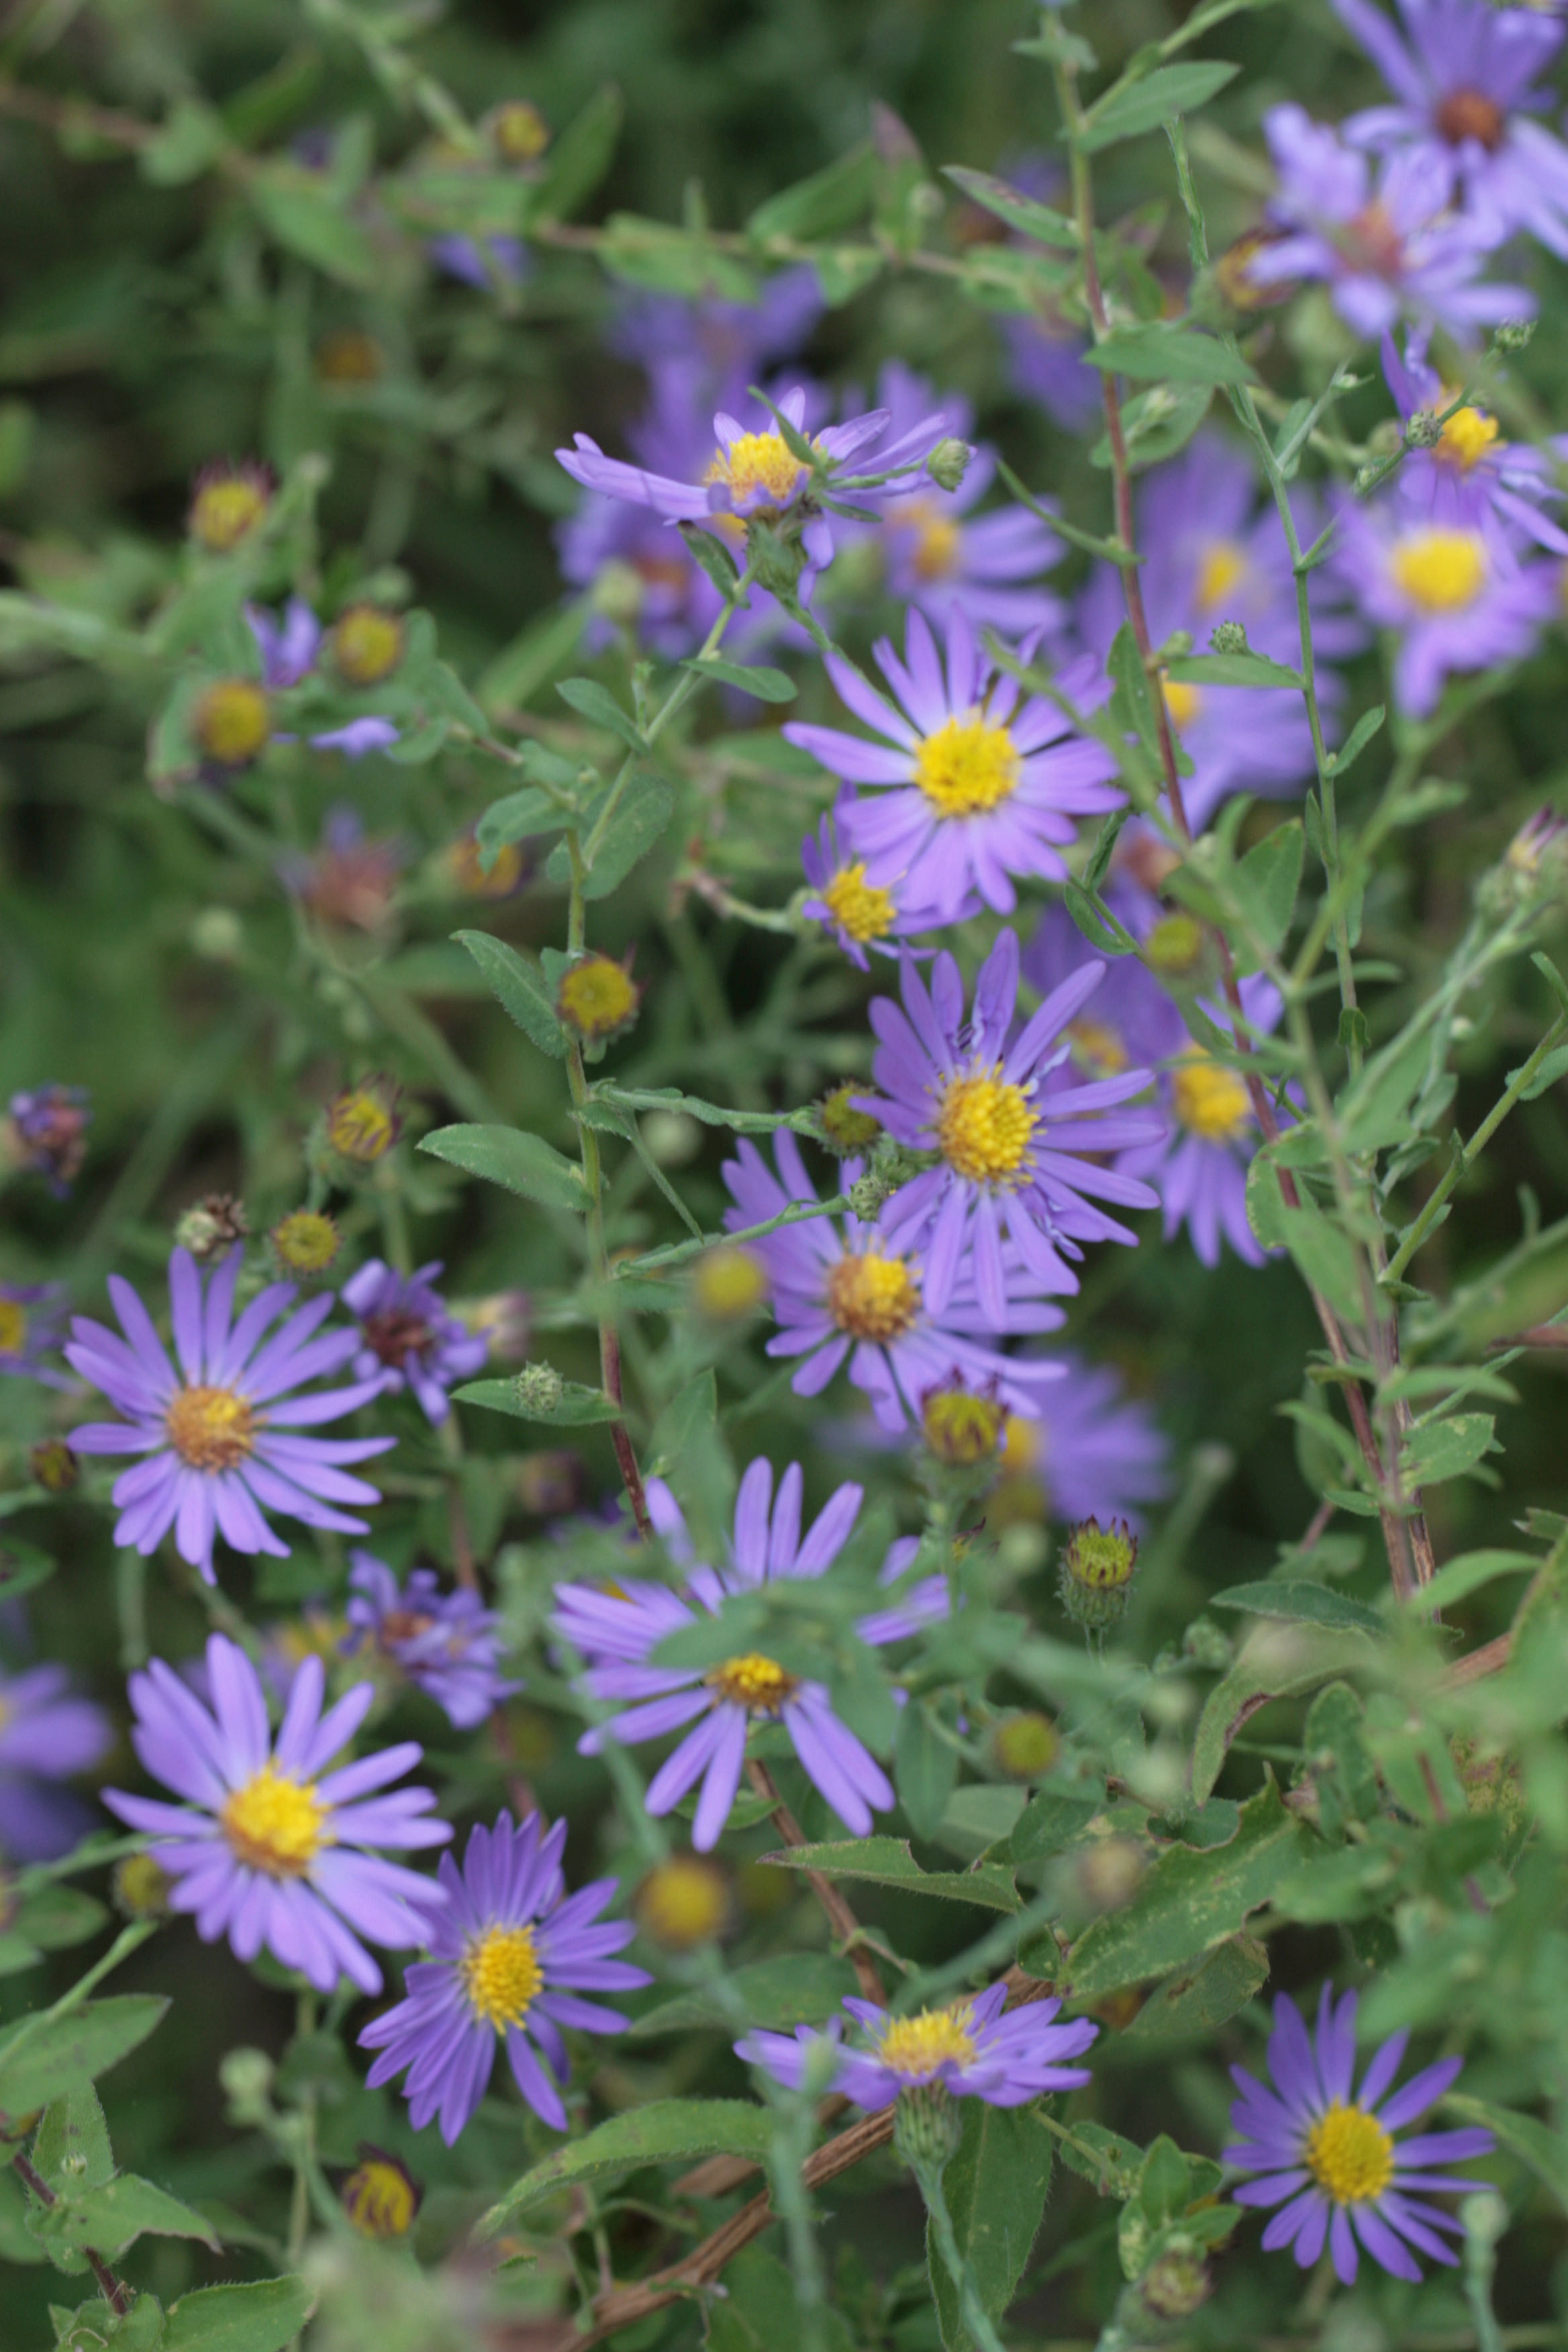 The Scientific Name is Symphyotrichum patens var. patens [= Aster patens]. You will likely hear them called Common Clasping Aster, Late Purple Aster. This picture shows the Wonderful splash of color  of Symphyotrichum patens var. patens [= Aster patens]